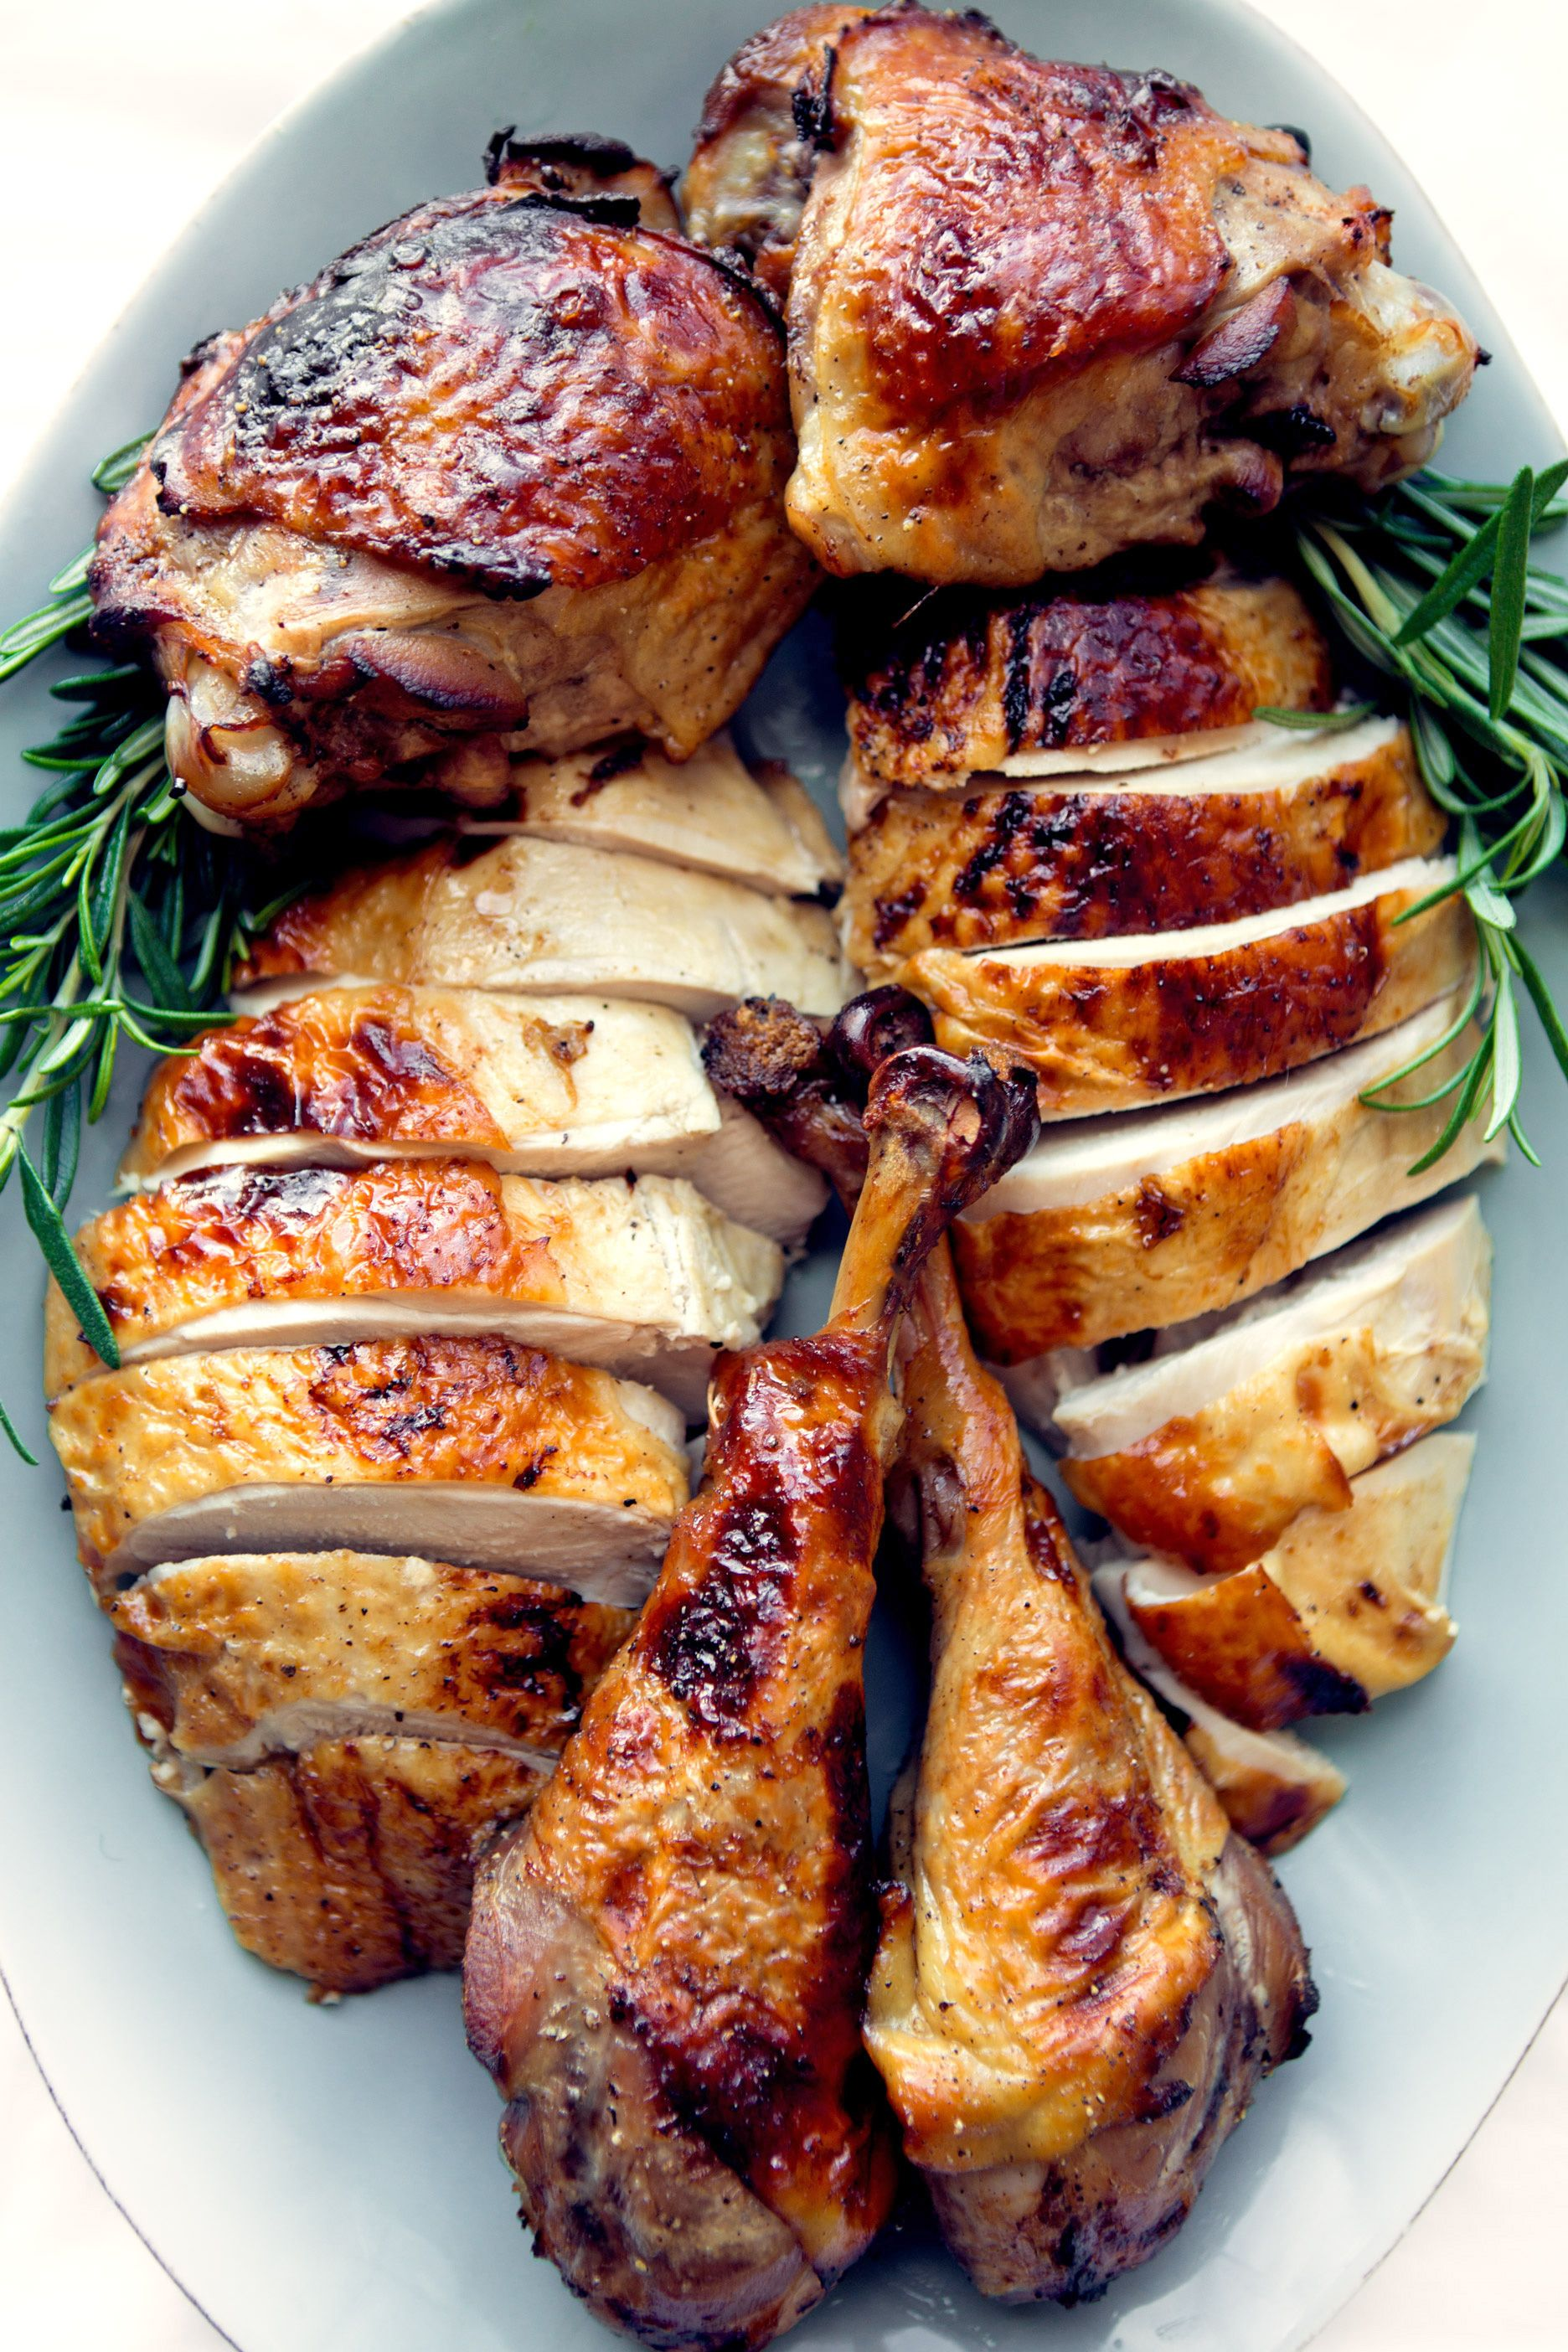 Buttermilk Brined Turkey By Williams Sonoma In This Lesson You Ll Learn Why A Buttermilk Brine Res Williams Sonoma Turkey Recipe William Sonoma Recipes Food